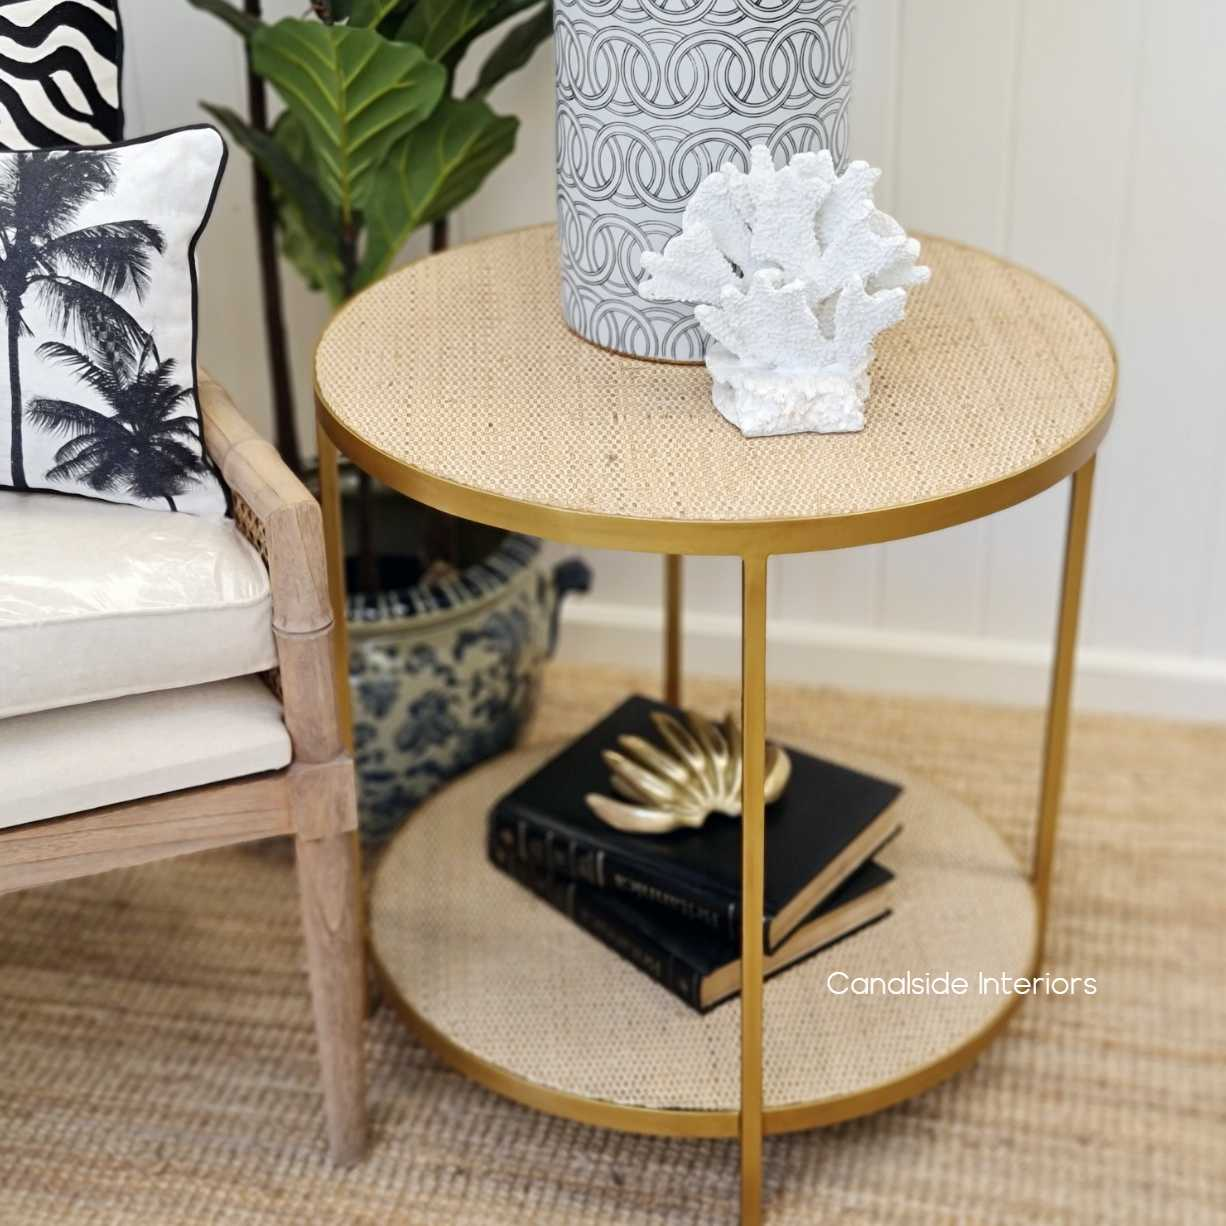 Knox rattan side table tables gold halltable sidetable loungeroom livingroom familyroom hollywood glam plantation island chinoiserie cane bedside nightstand